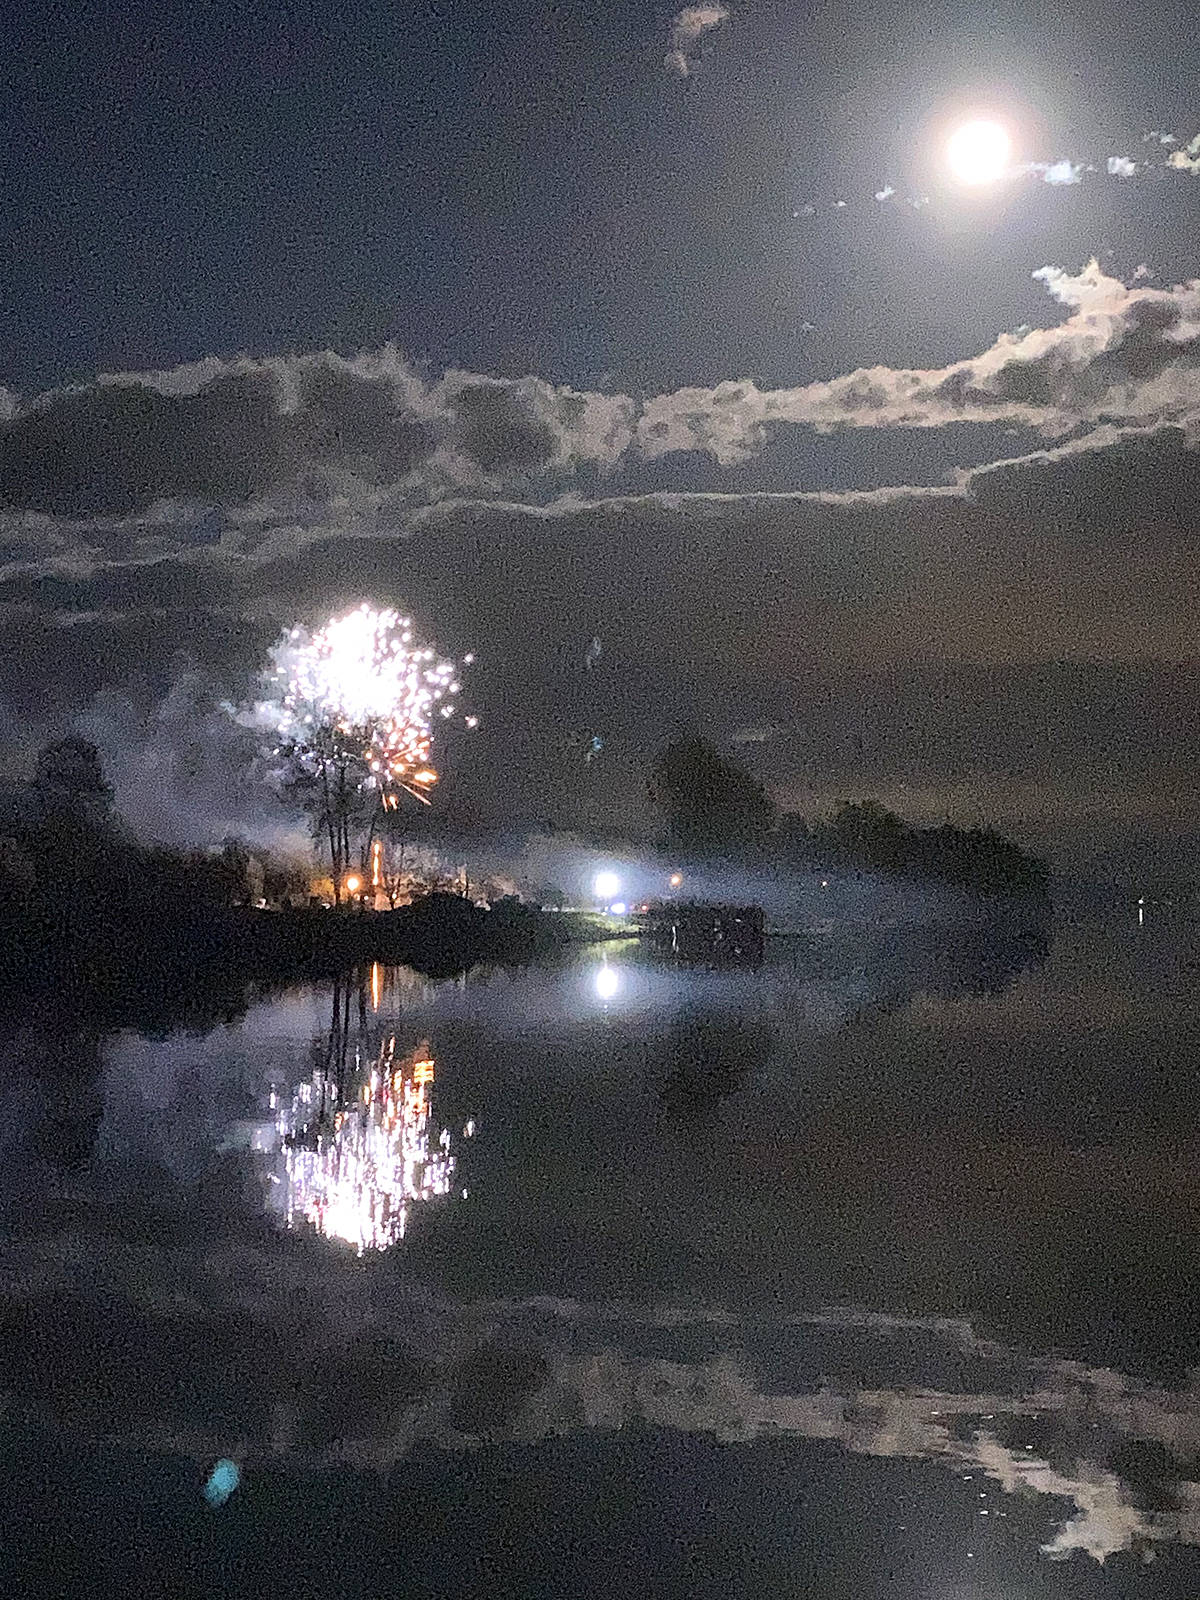 Wout Brouwer of Langley shared this picture of some celebrating Halloween from McMillan Island under a rare blue moon as seen from the south end of the Jacob Haldi Bridge on Oct. 30. (Special to Langley Advance Times)